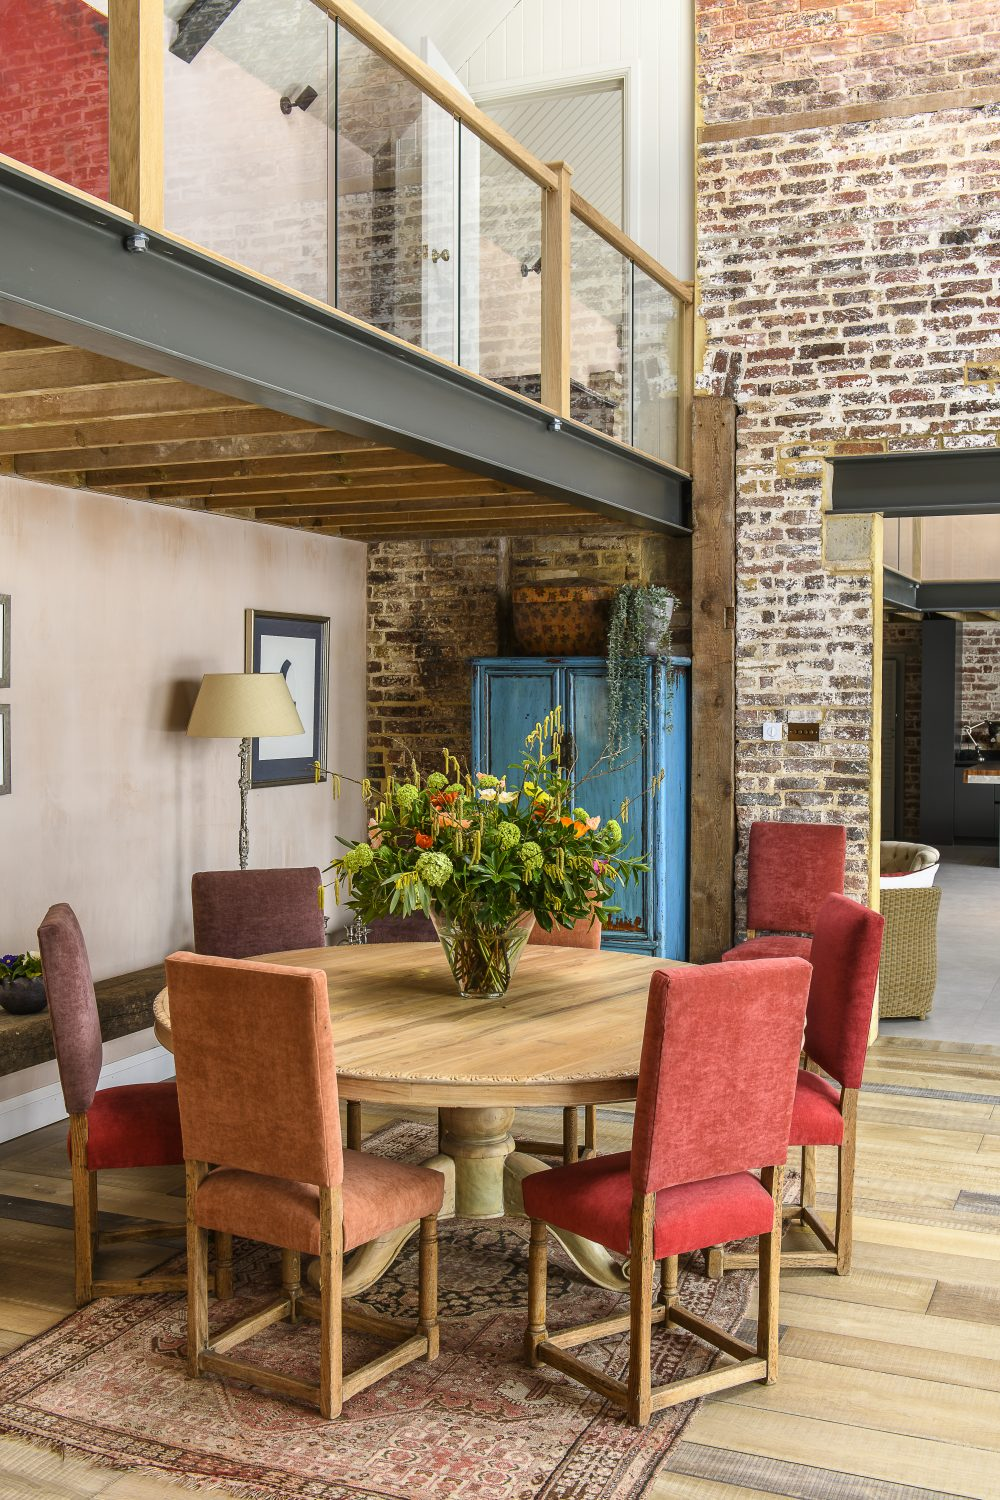 Unfinished plaster complements the exposed brickwork next to a dining area in the spacious open-plan living room